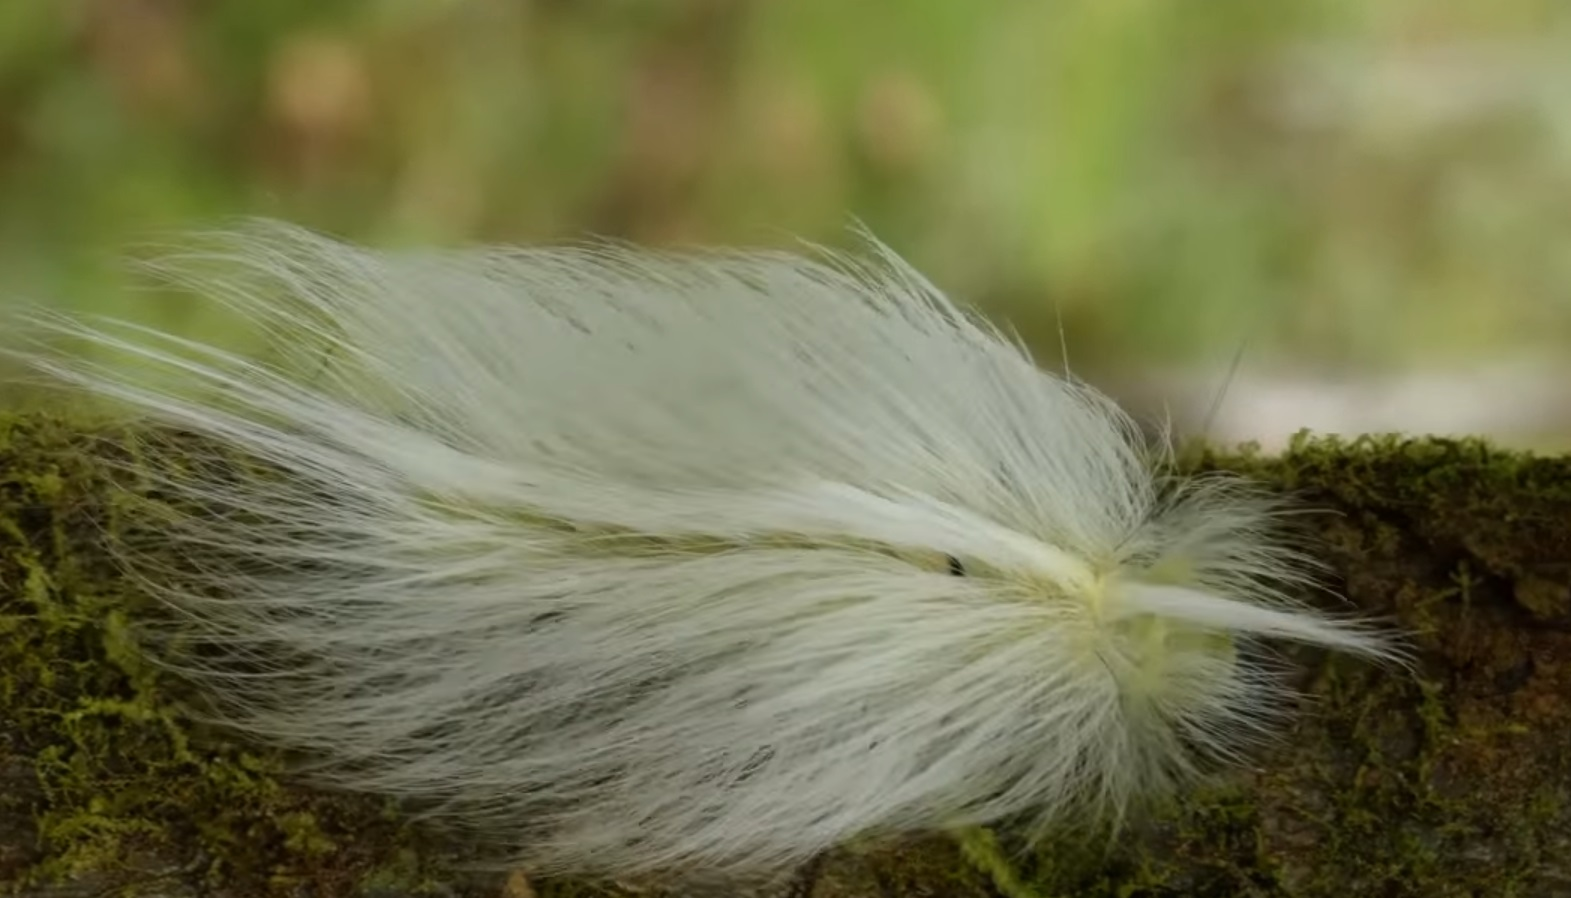 Caterpillar Disguised As Feather